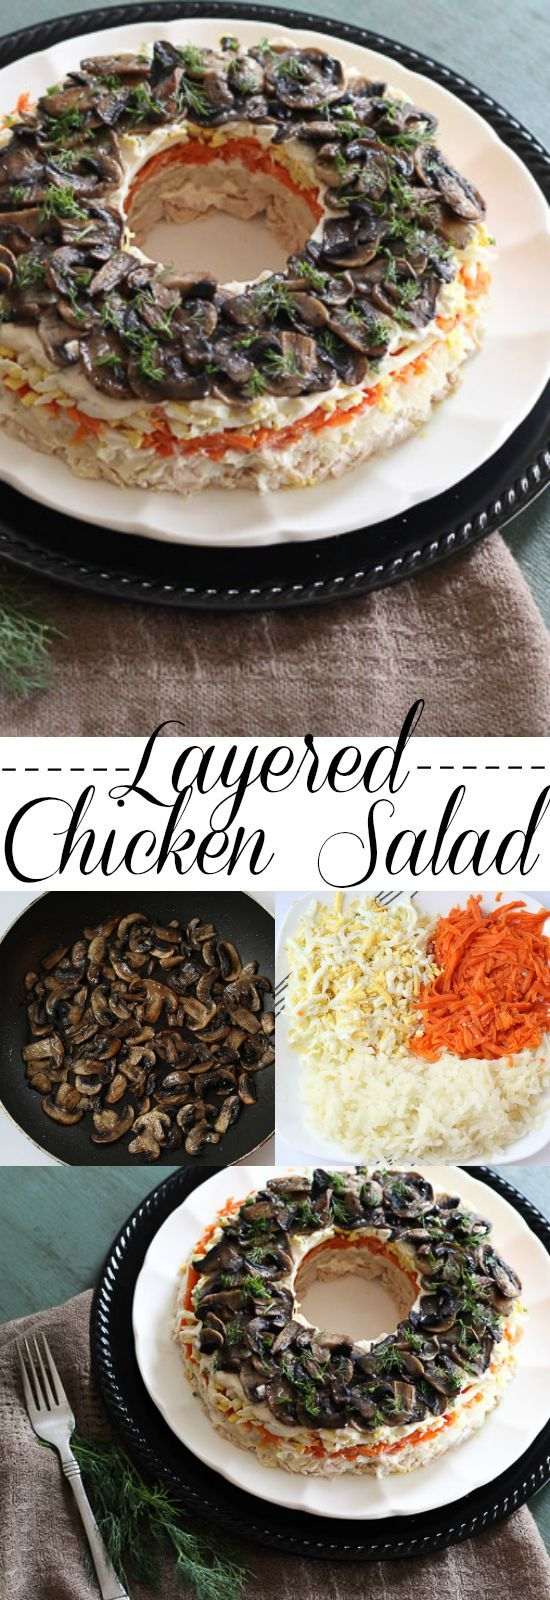 Layered Chicken Salad with Potatoes, Carrots and Mushrooms. ValentinasCorner.com